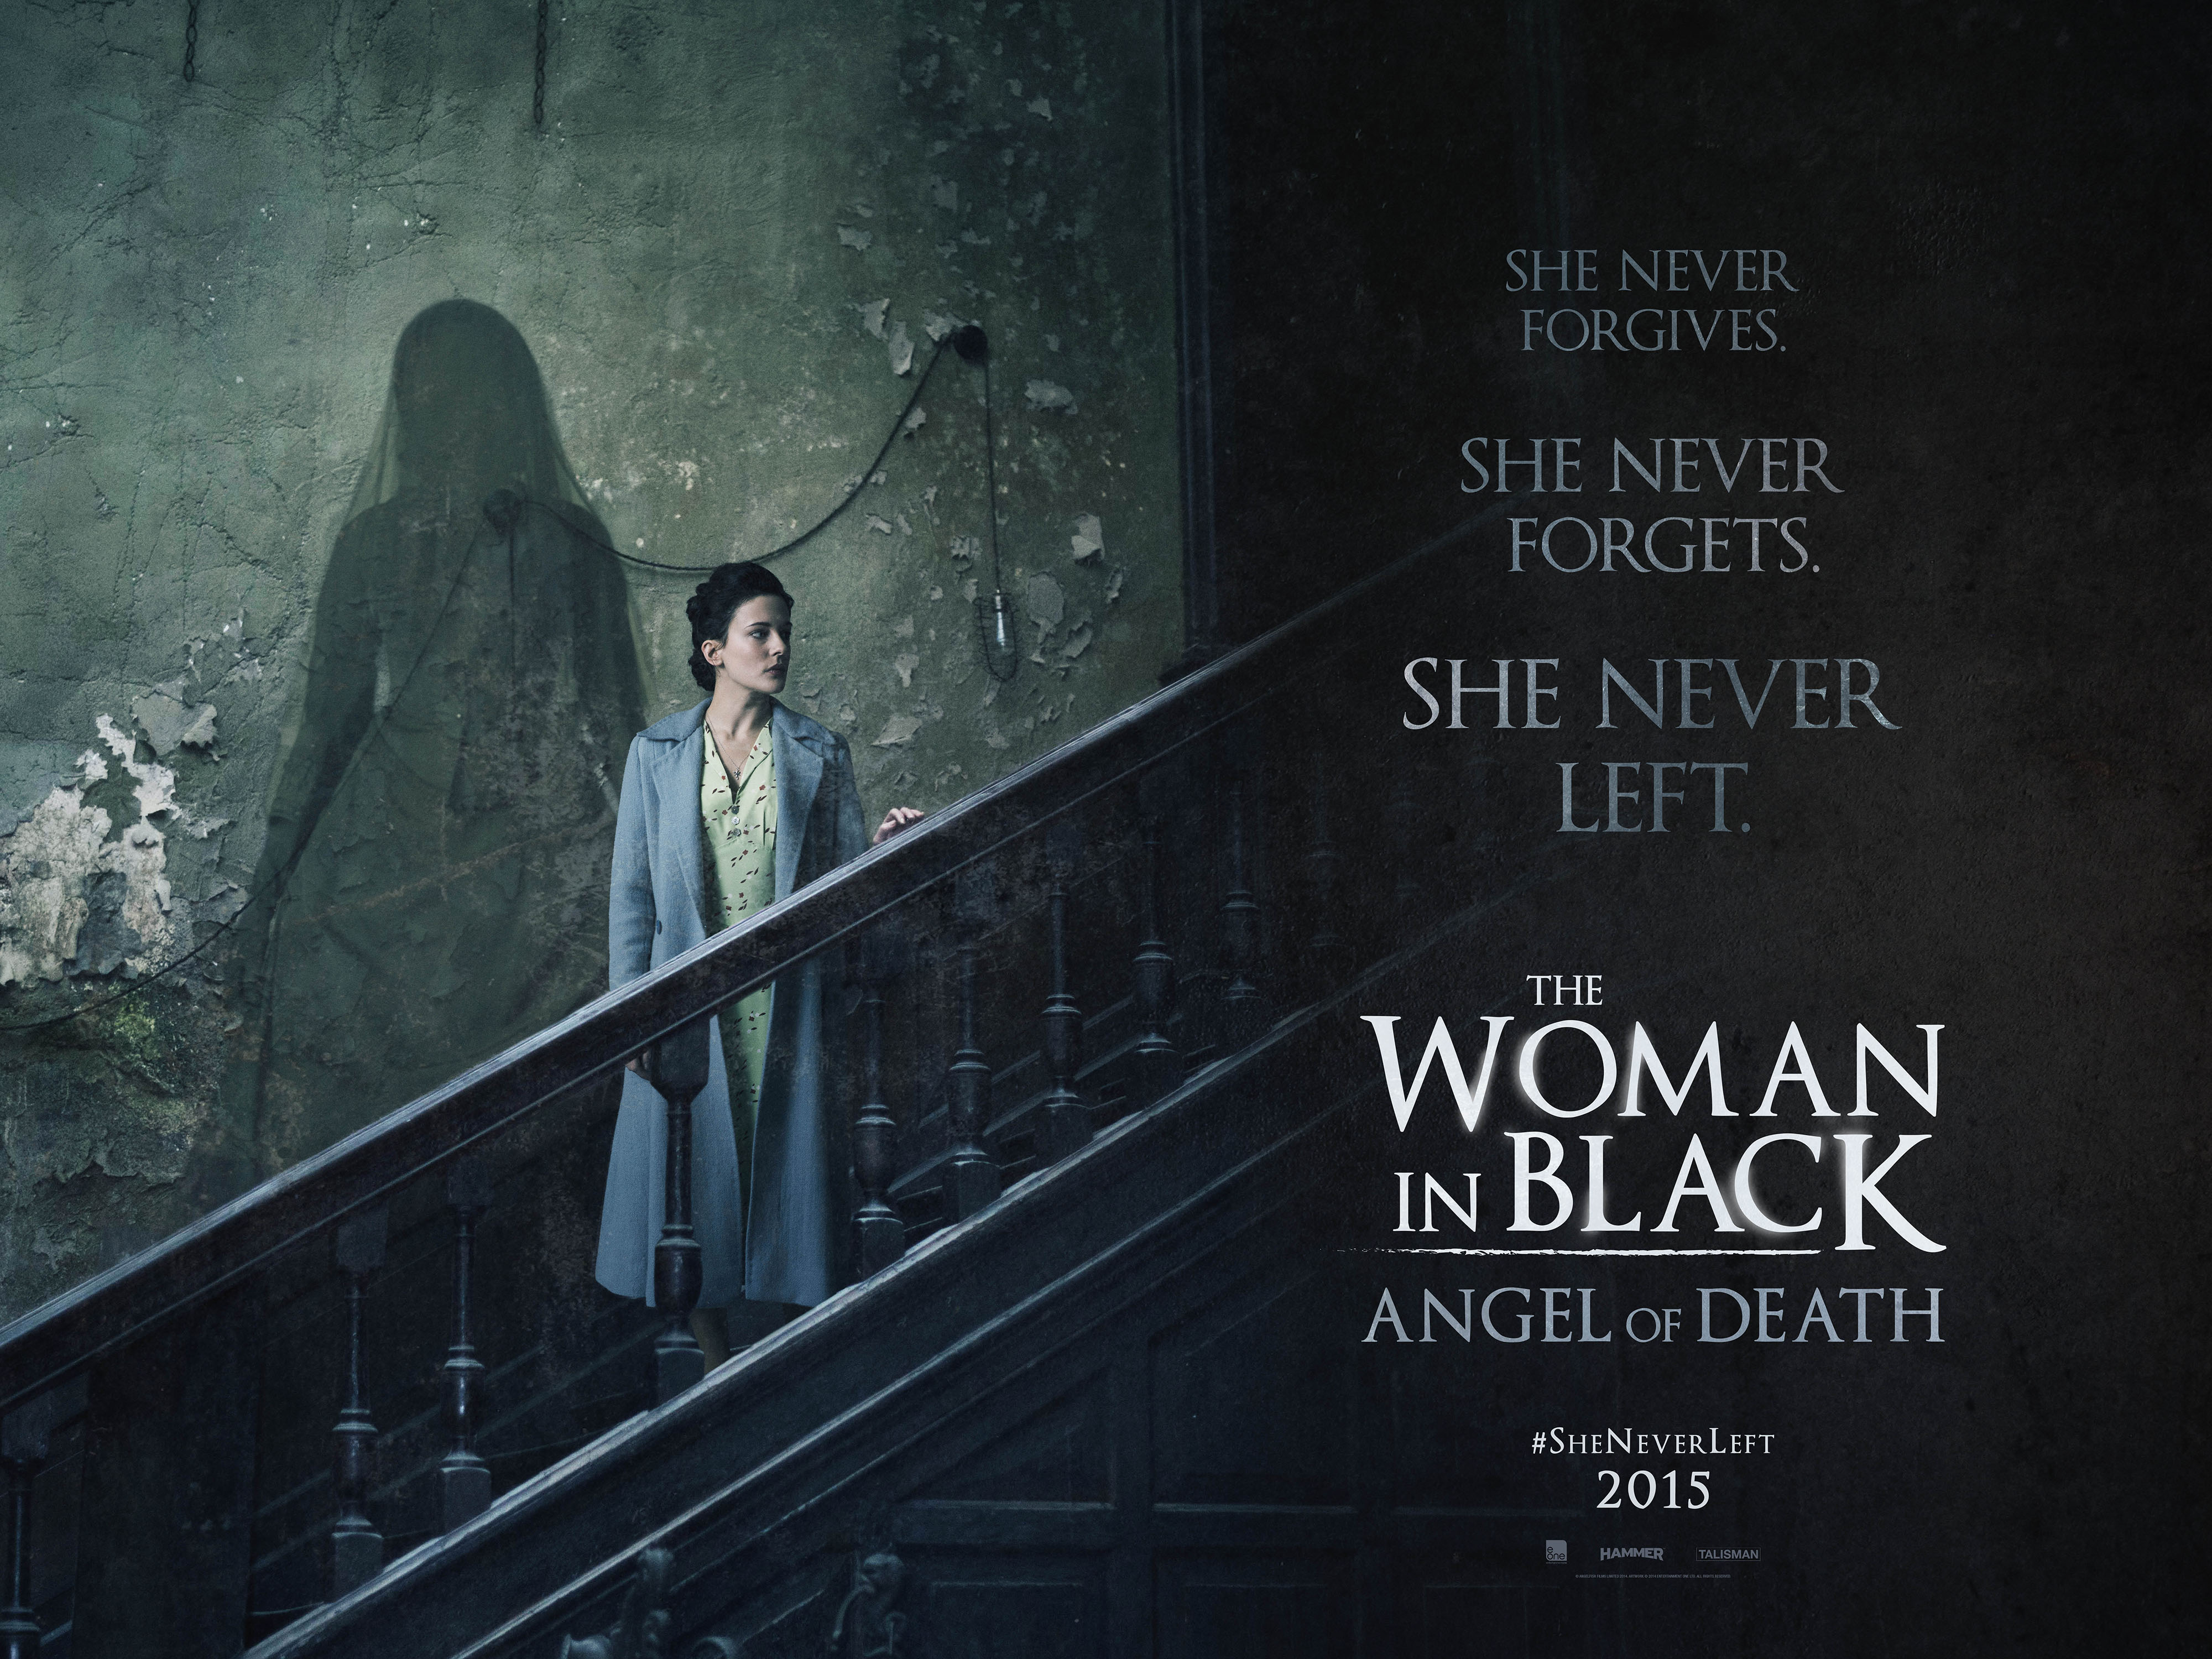 the woman in black - angel of death trailer